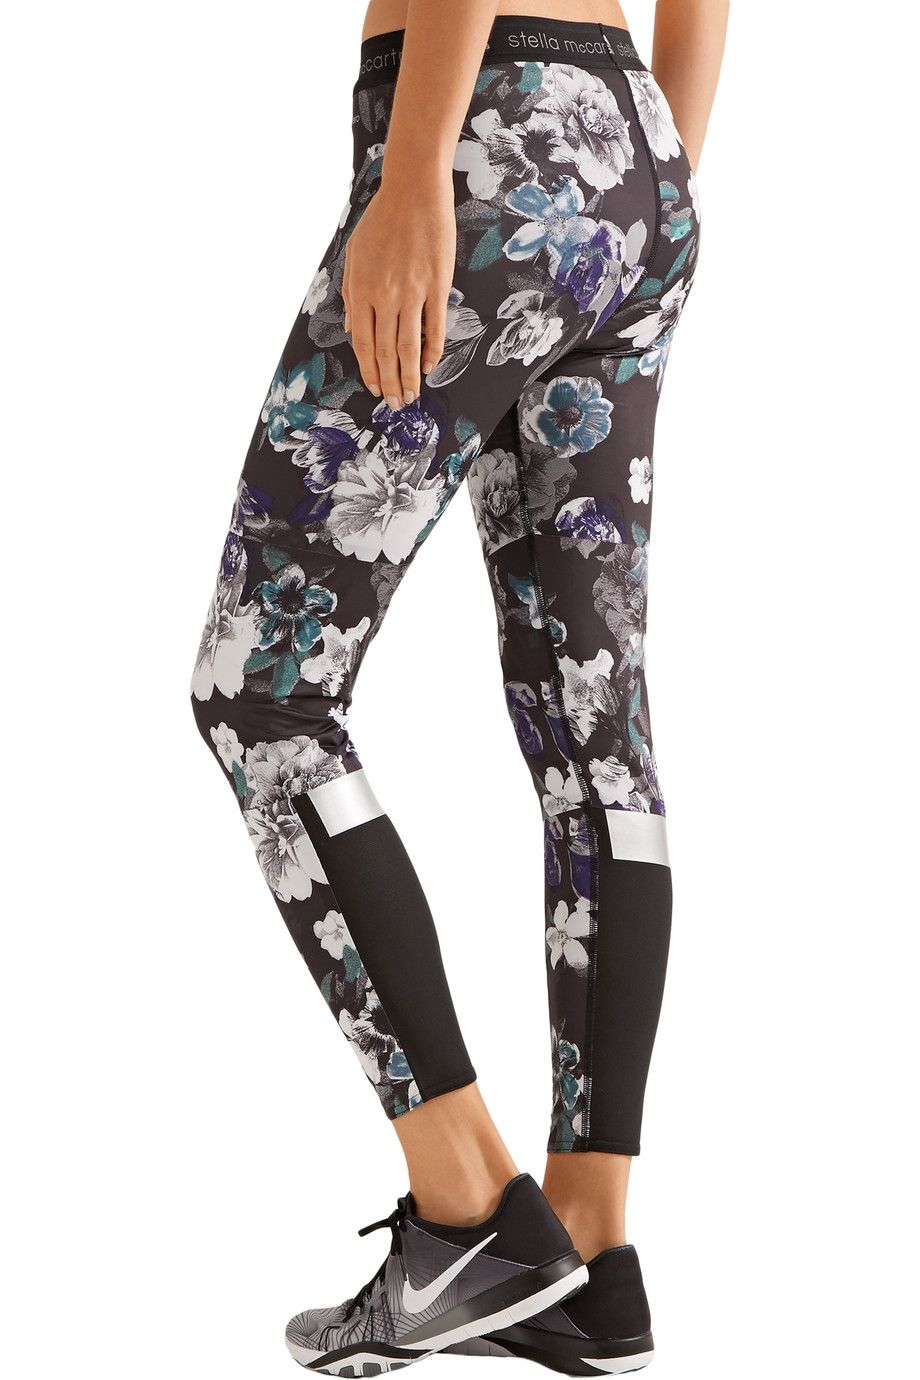 4dab7e0719e46 Shop on-sale Adidas by Stella McCartney Floral-print stretch-jersey leggings.  Browse other discount designer Activewear & more on The Most Fashionable ...